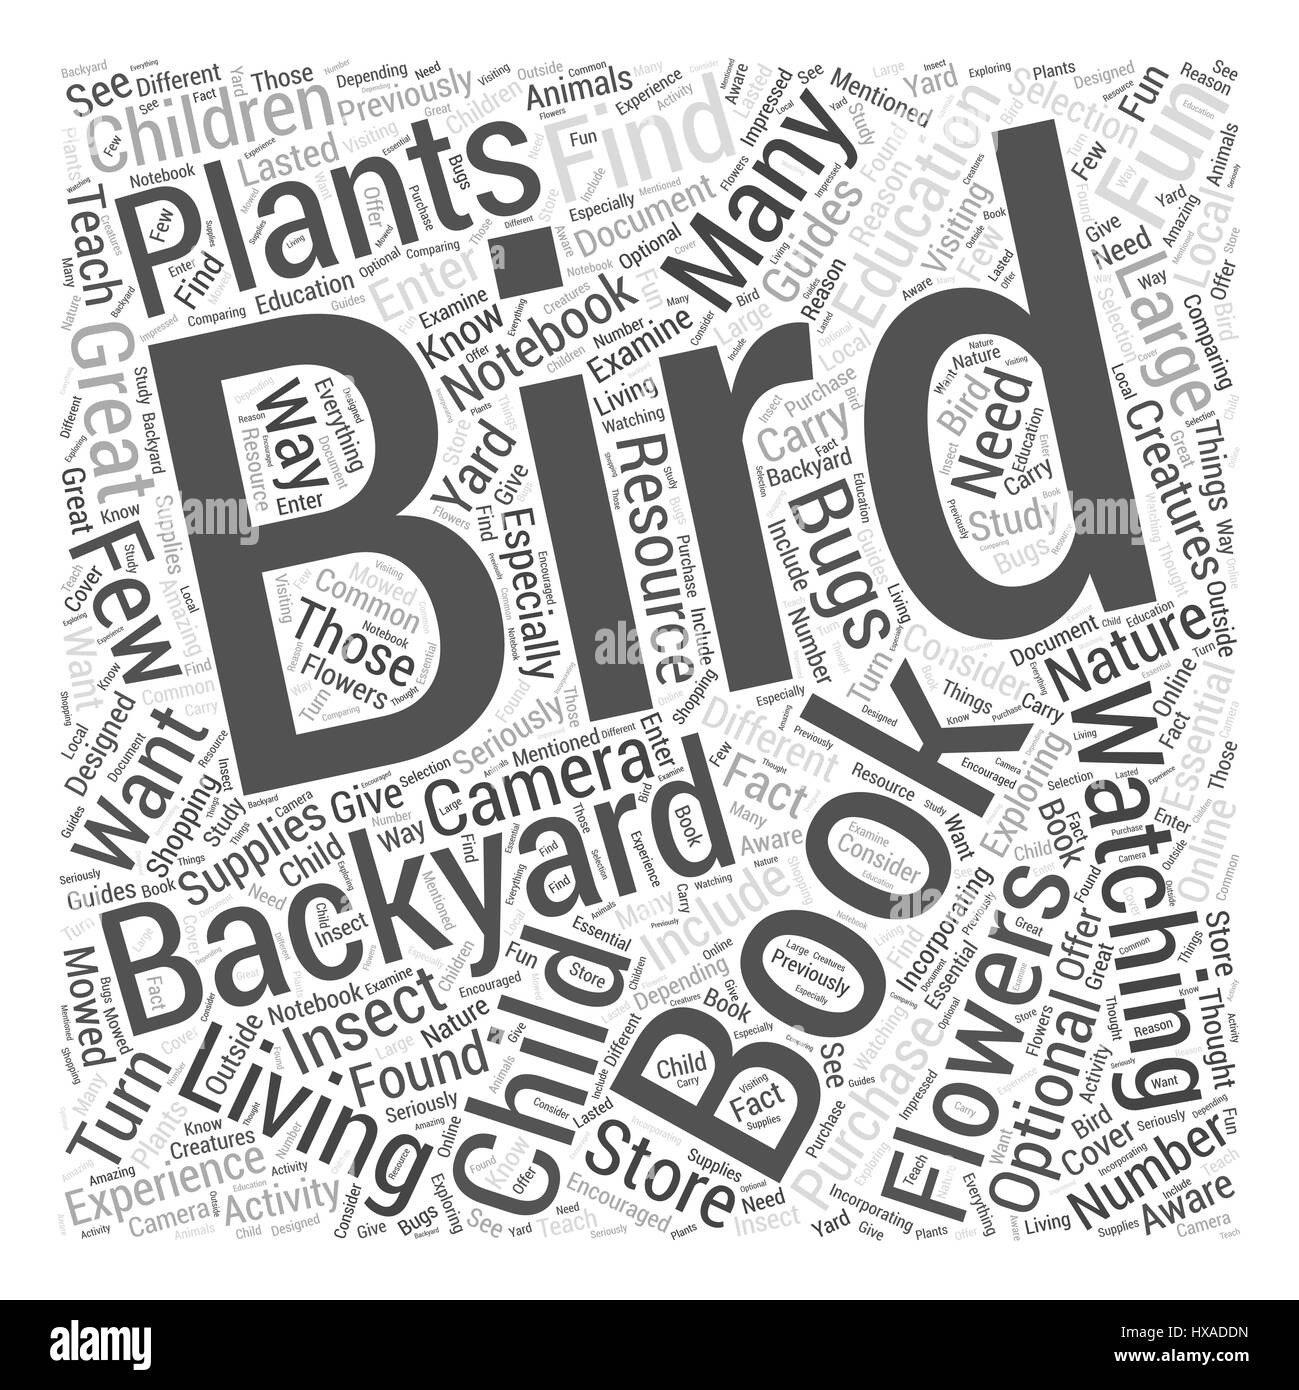 Exploring Nature with Your Child Word Cloud Concept - Stock Image